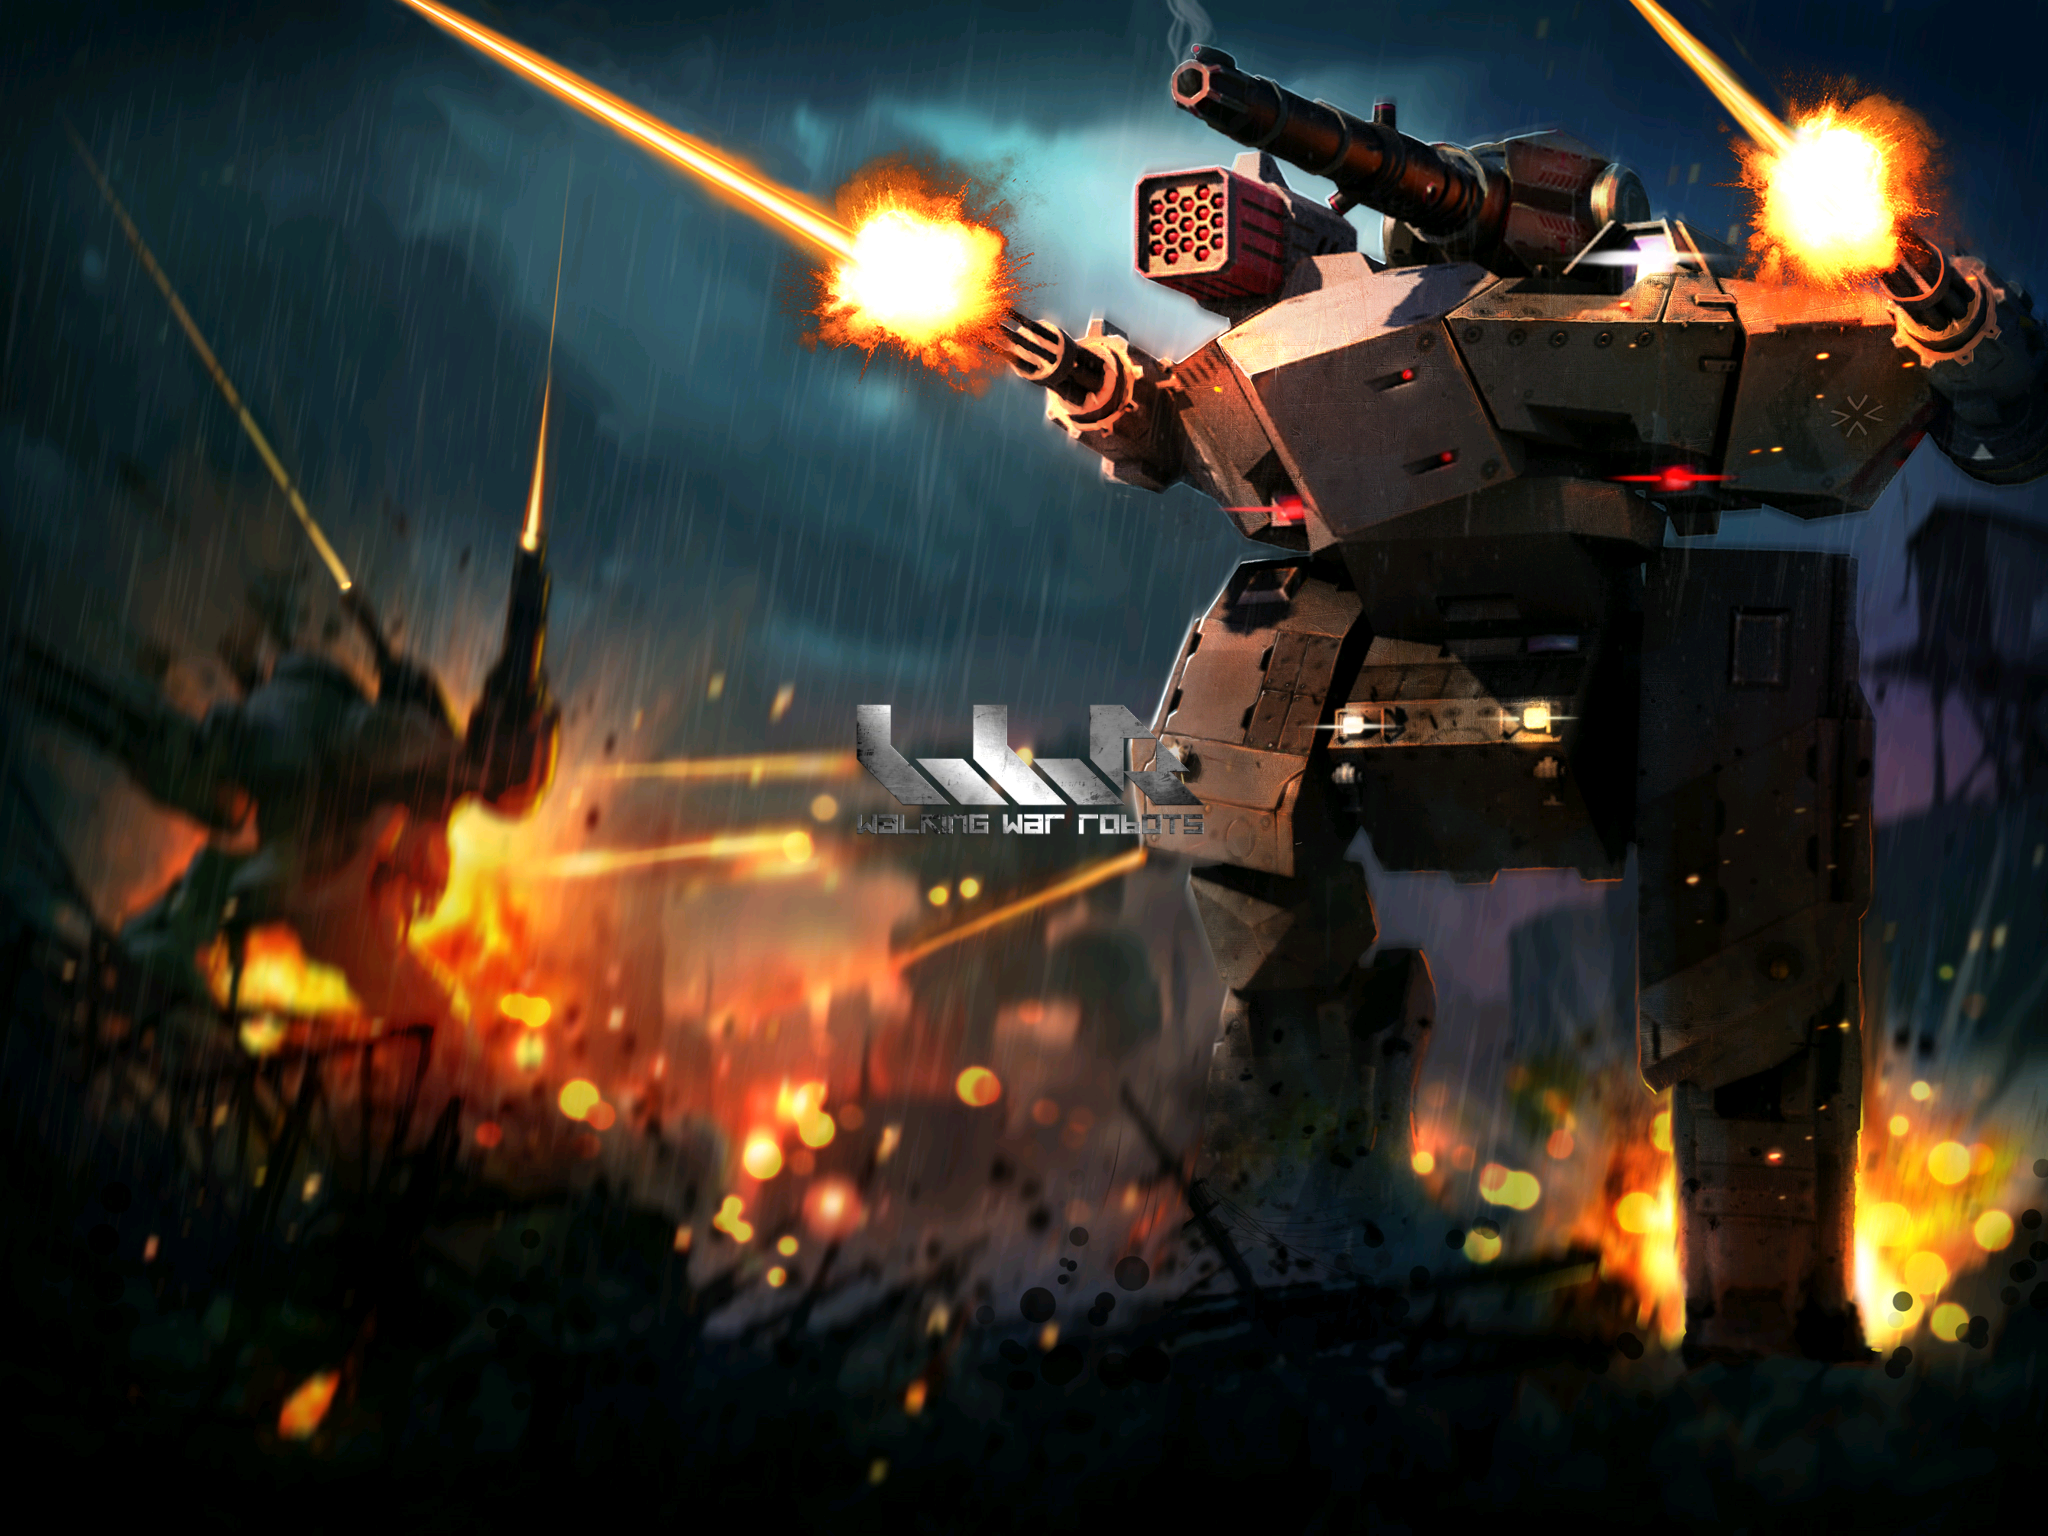 Walking War Robots: Live. Die. Repeat. Fun. Week 1.